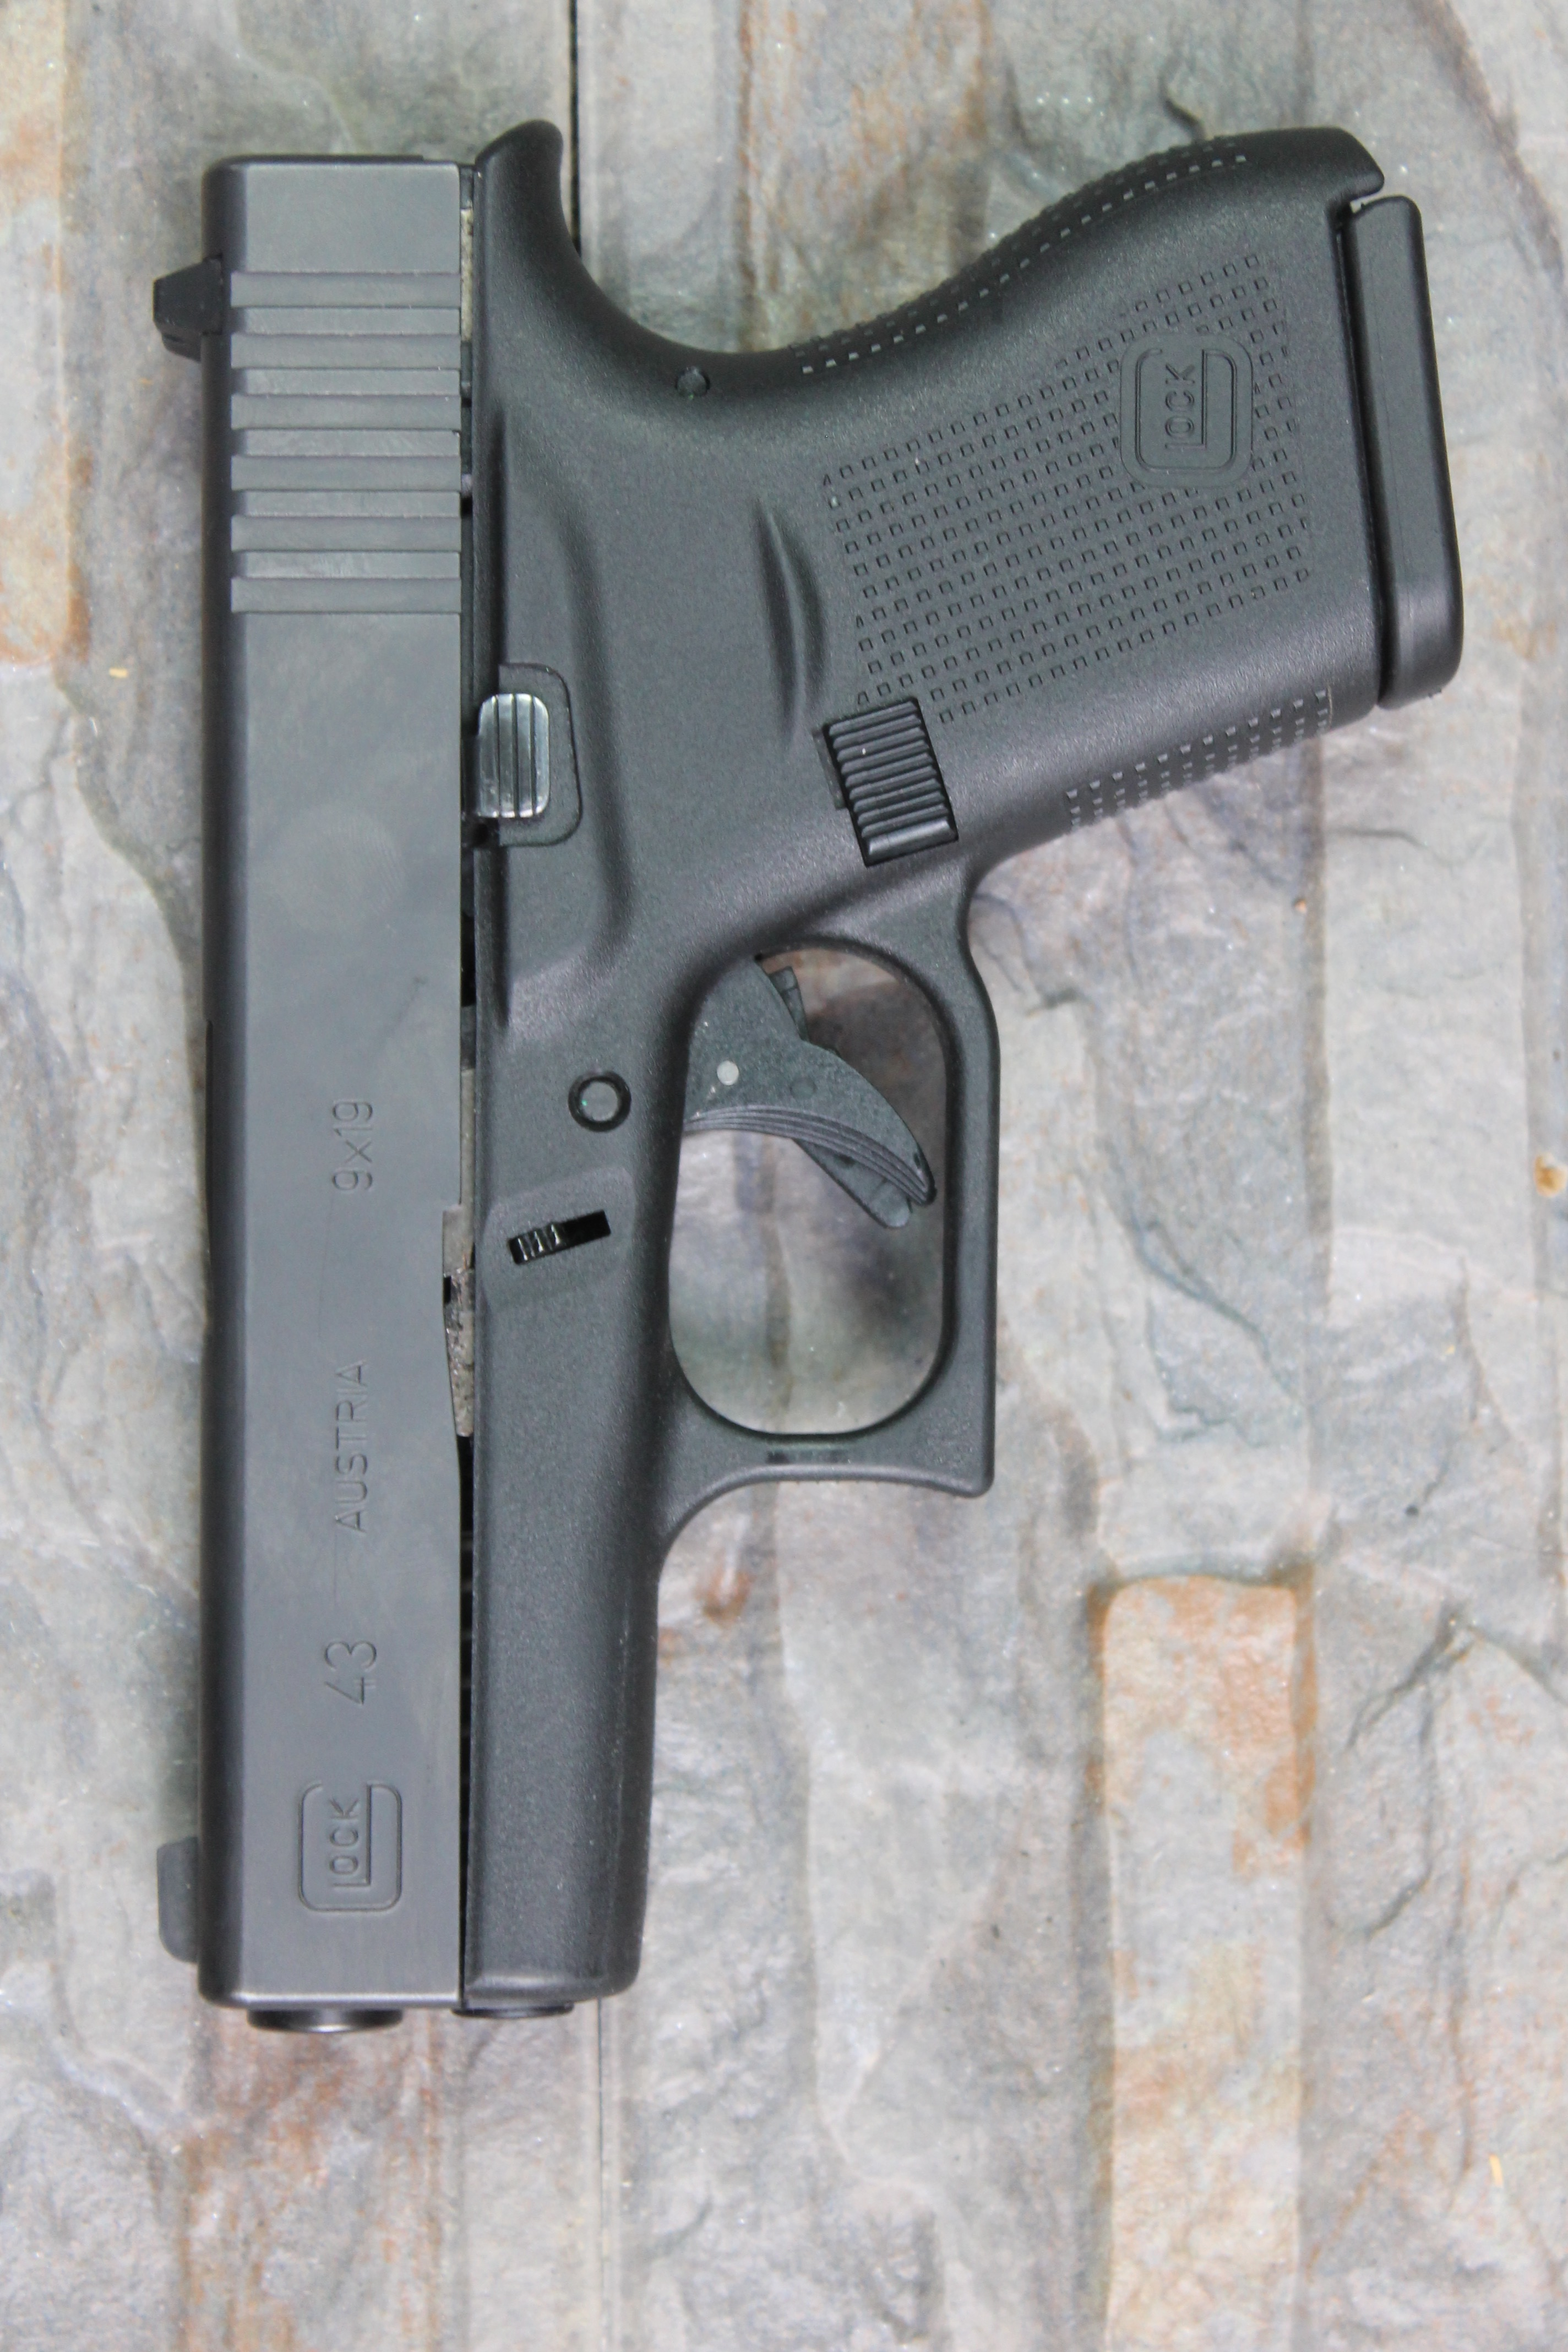 43 Best Images About Nails On Pinterest: Glock 43 Concealed Carry Handgun Review